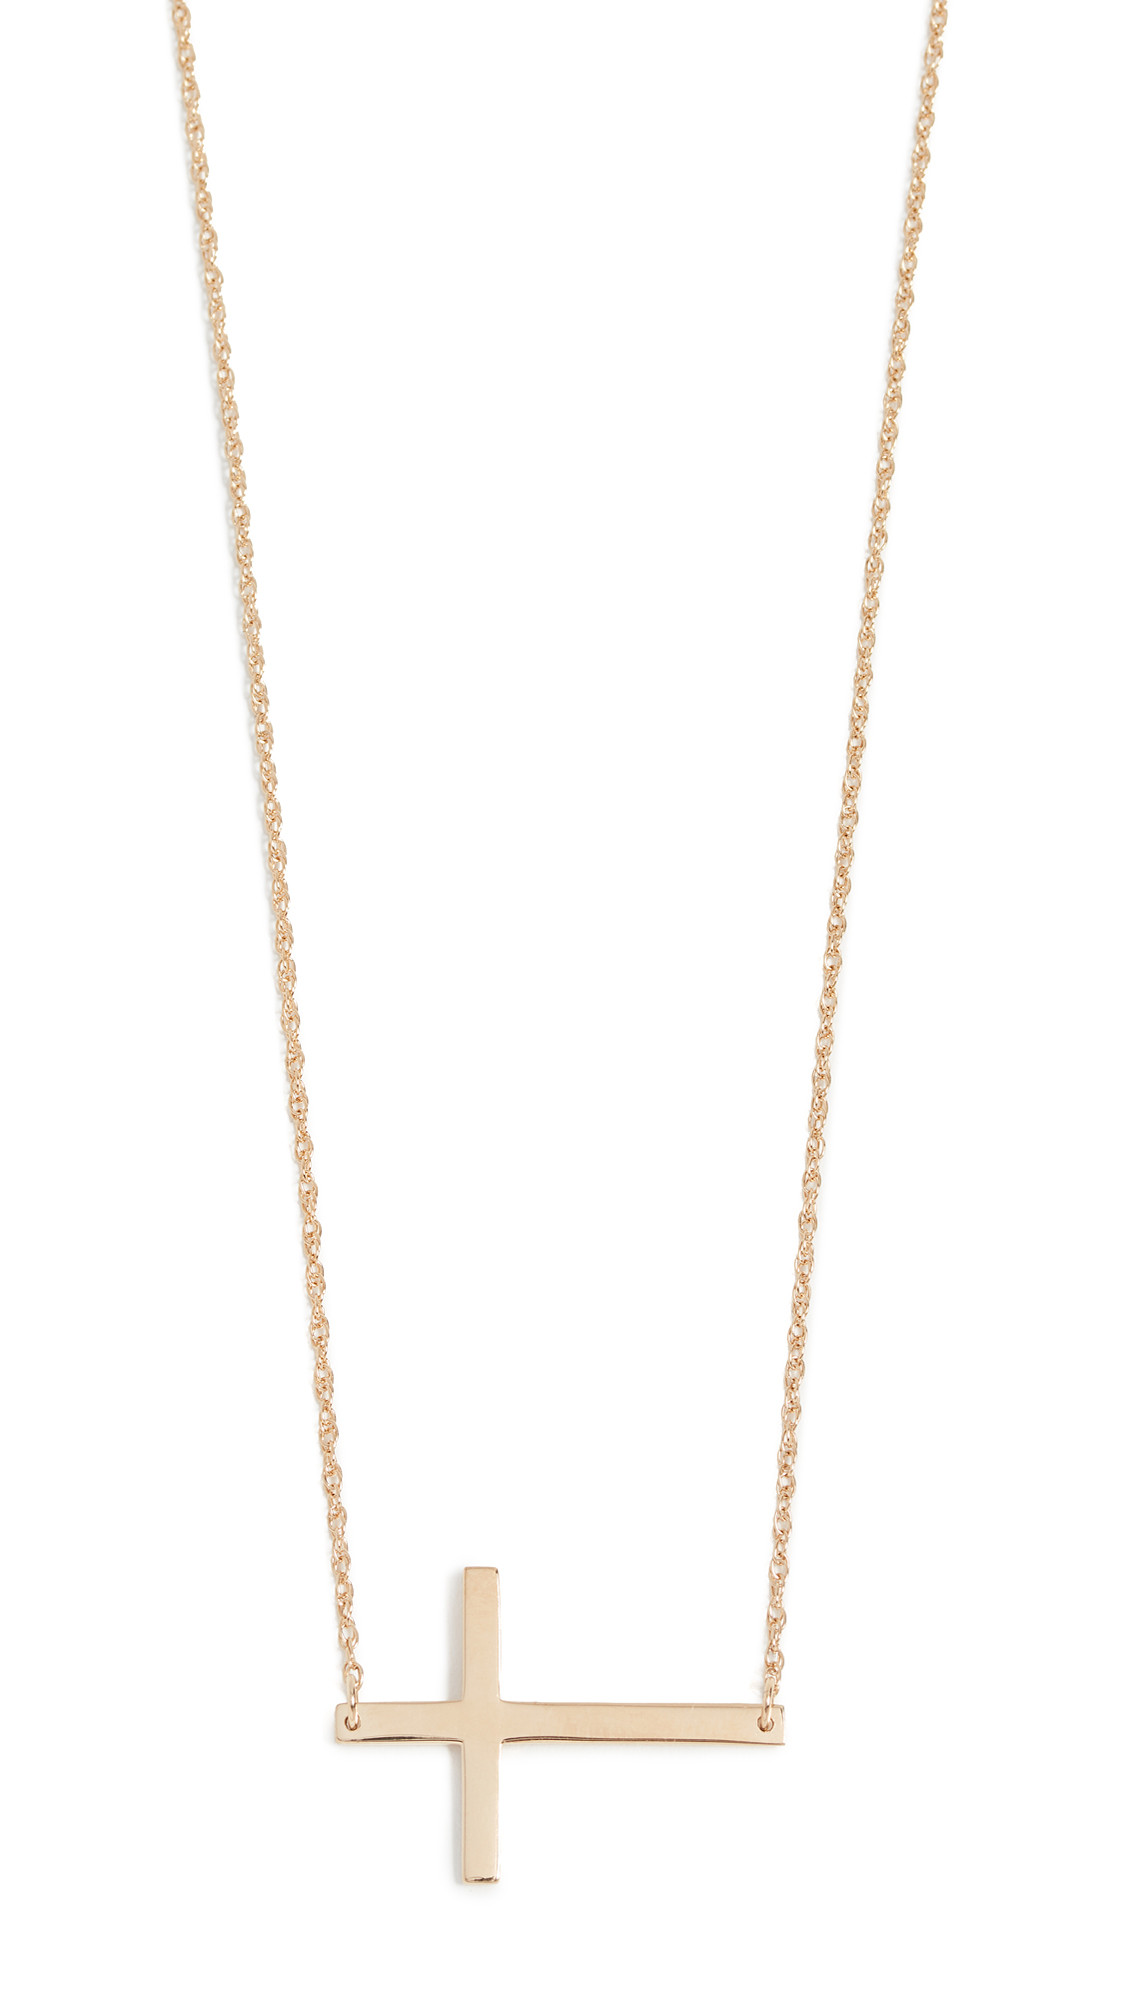 Jennifer Zeuner Jewelry Horizontal Cross Necklace - Gold